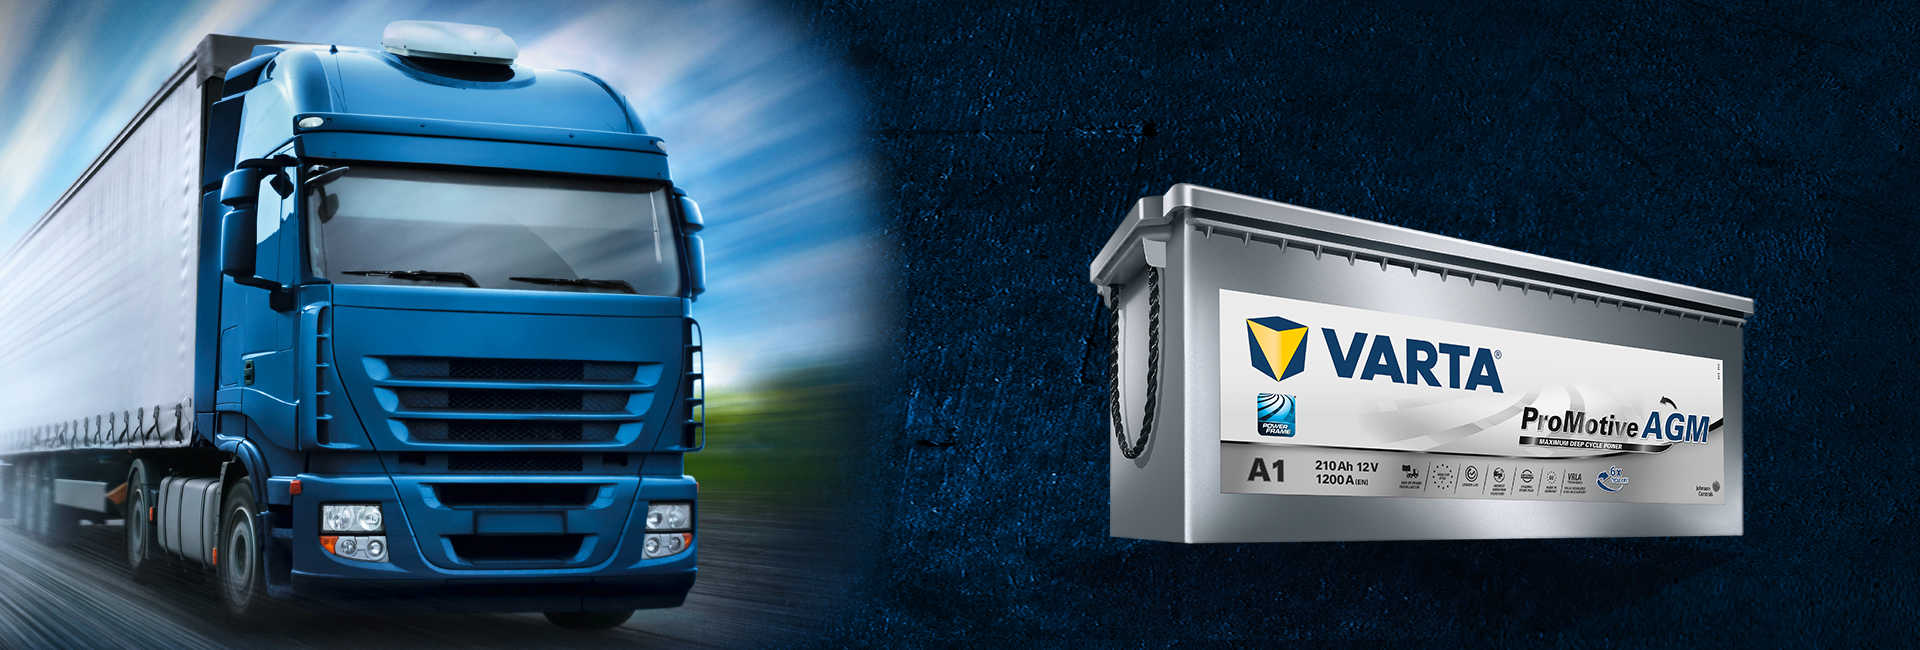 baf020ead99e VARTA® AGM technology for trucks